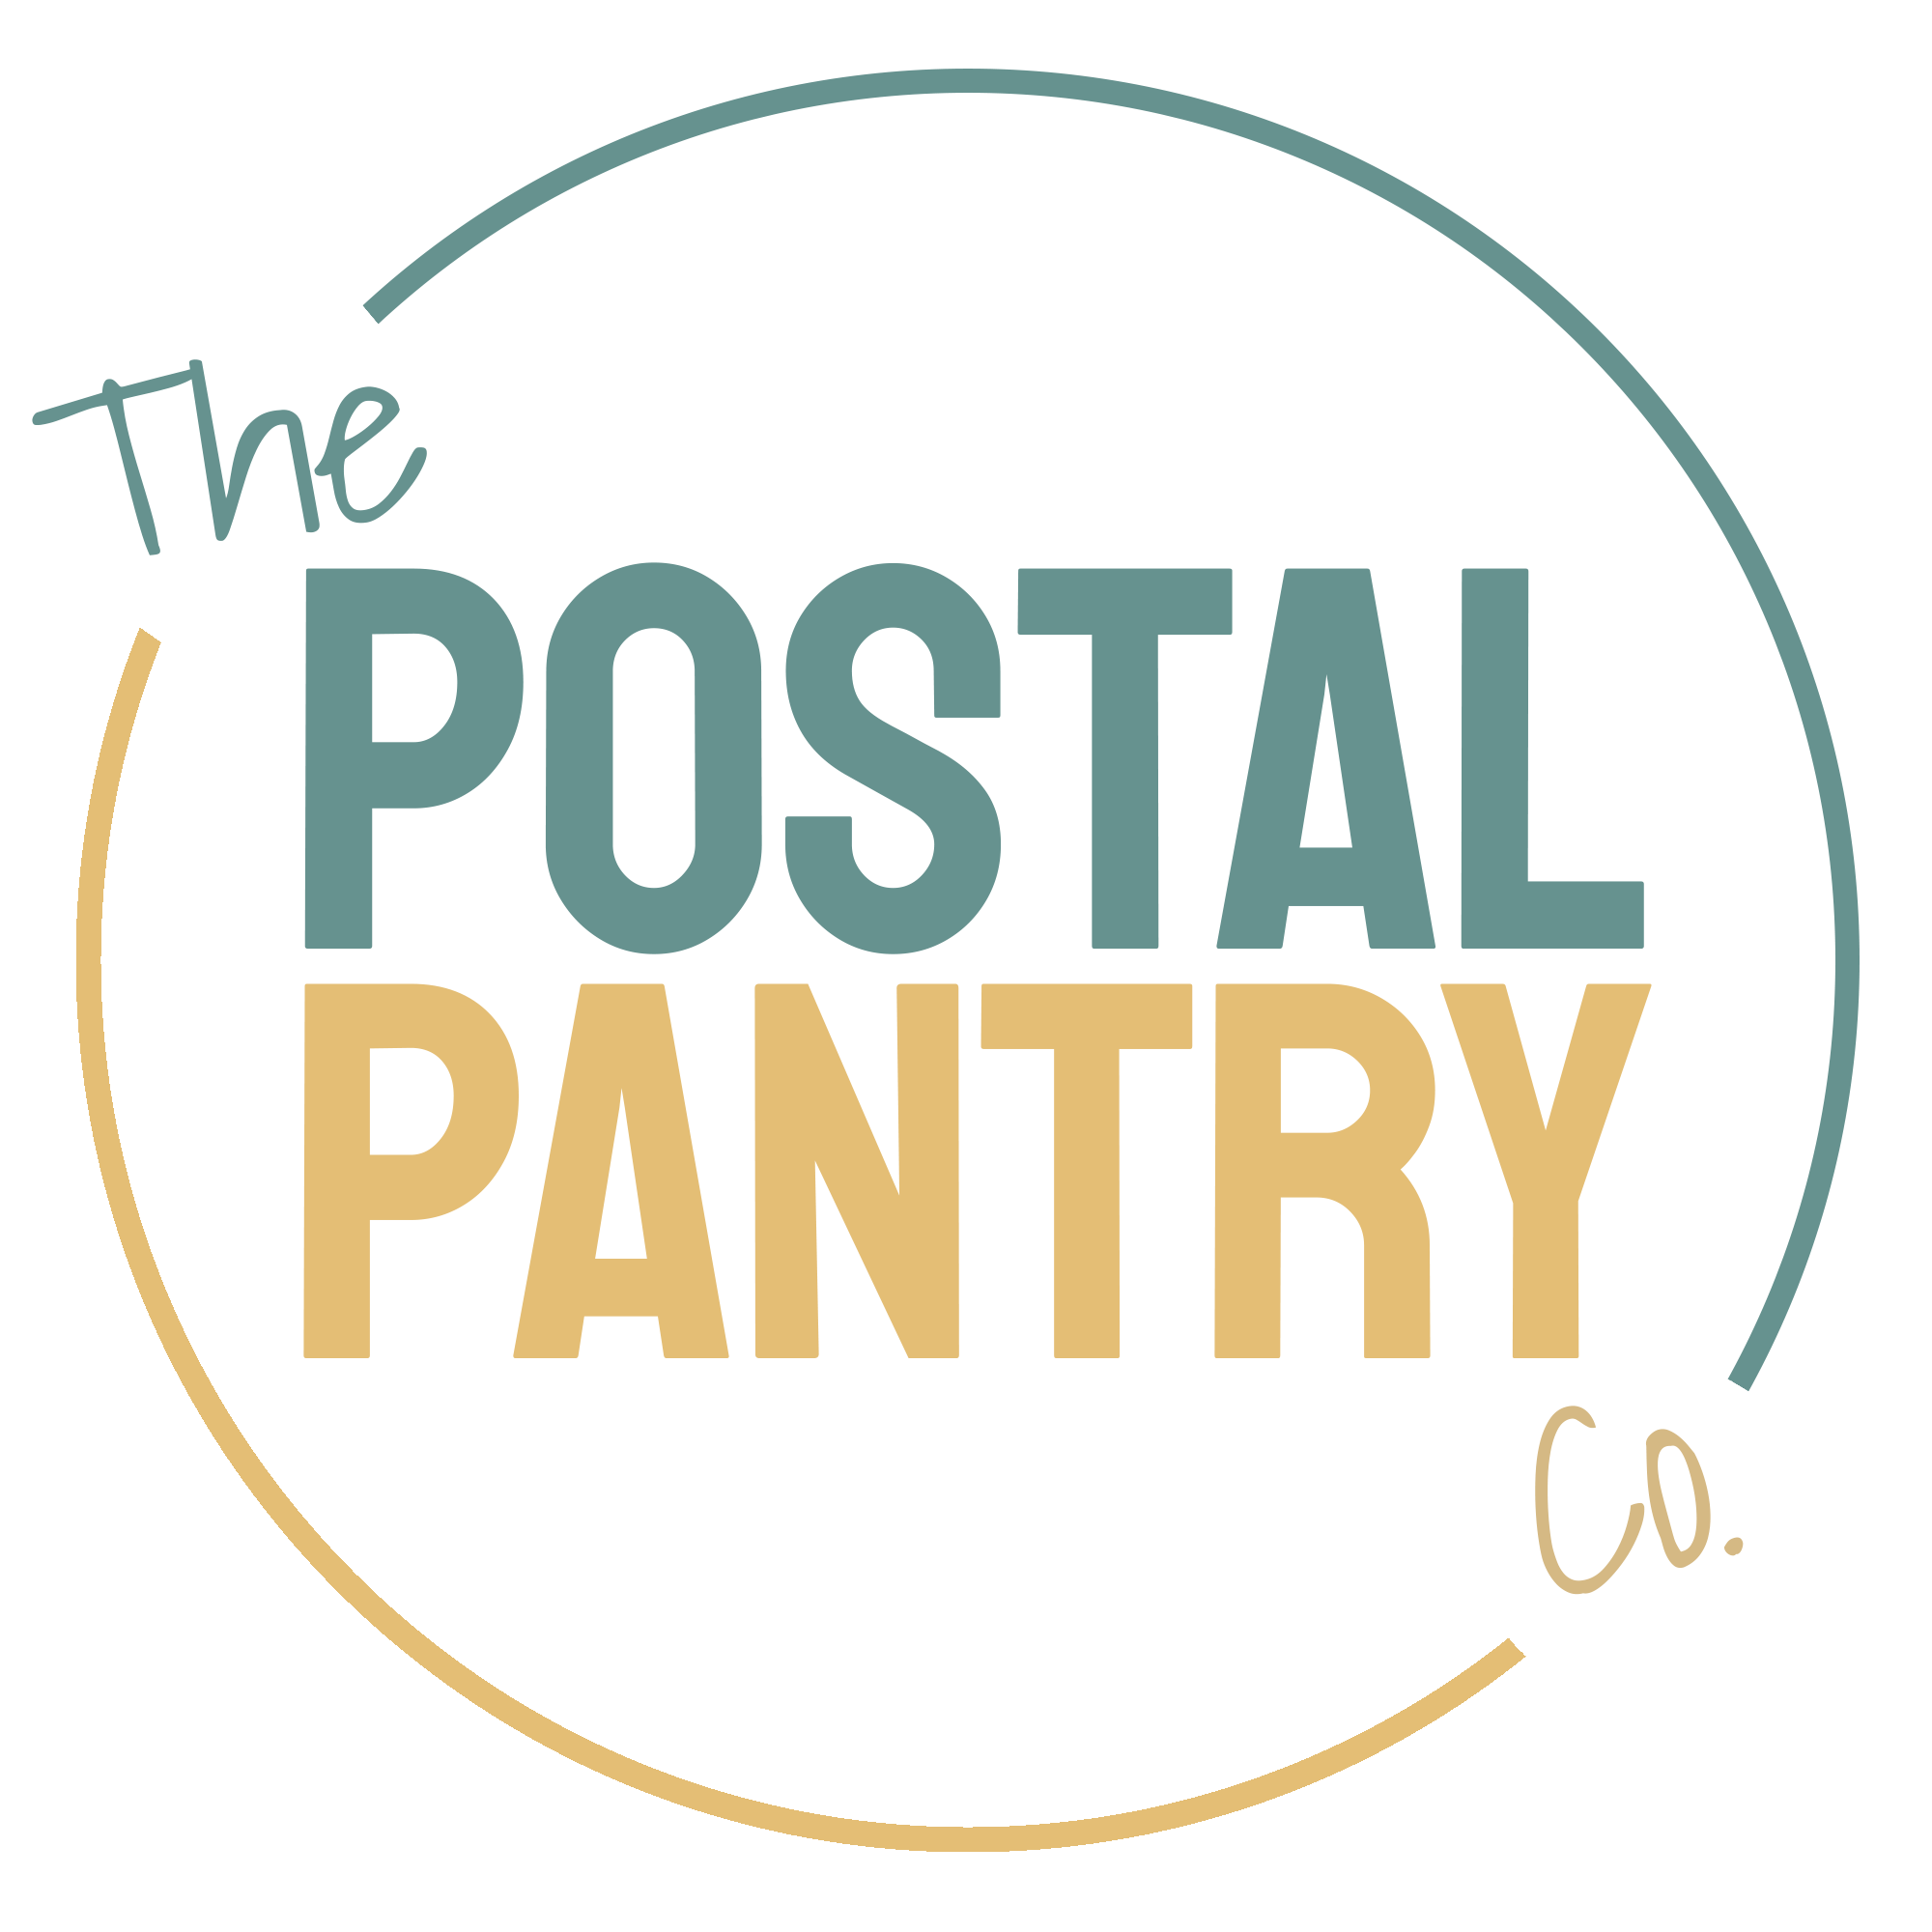 The Postal Pantry Company